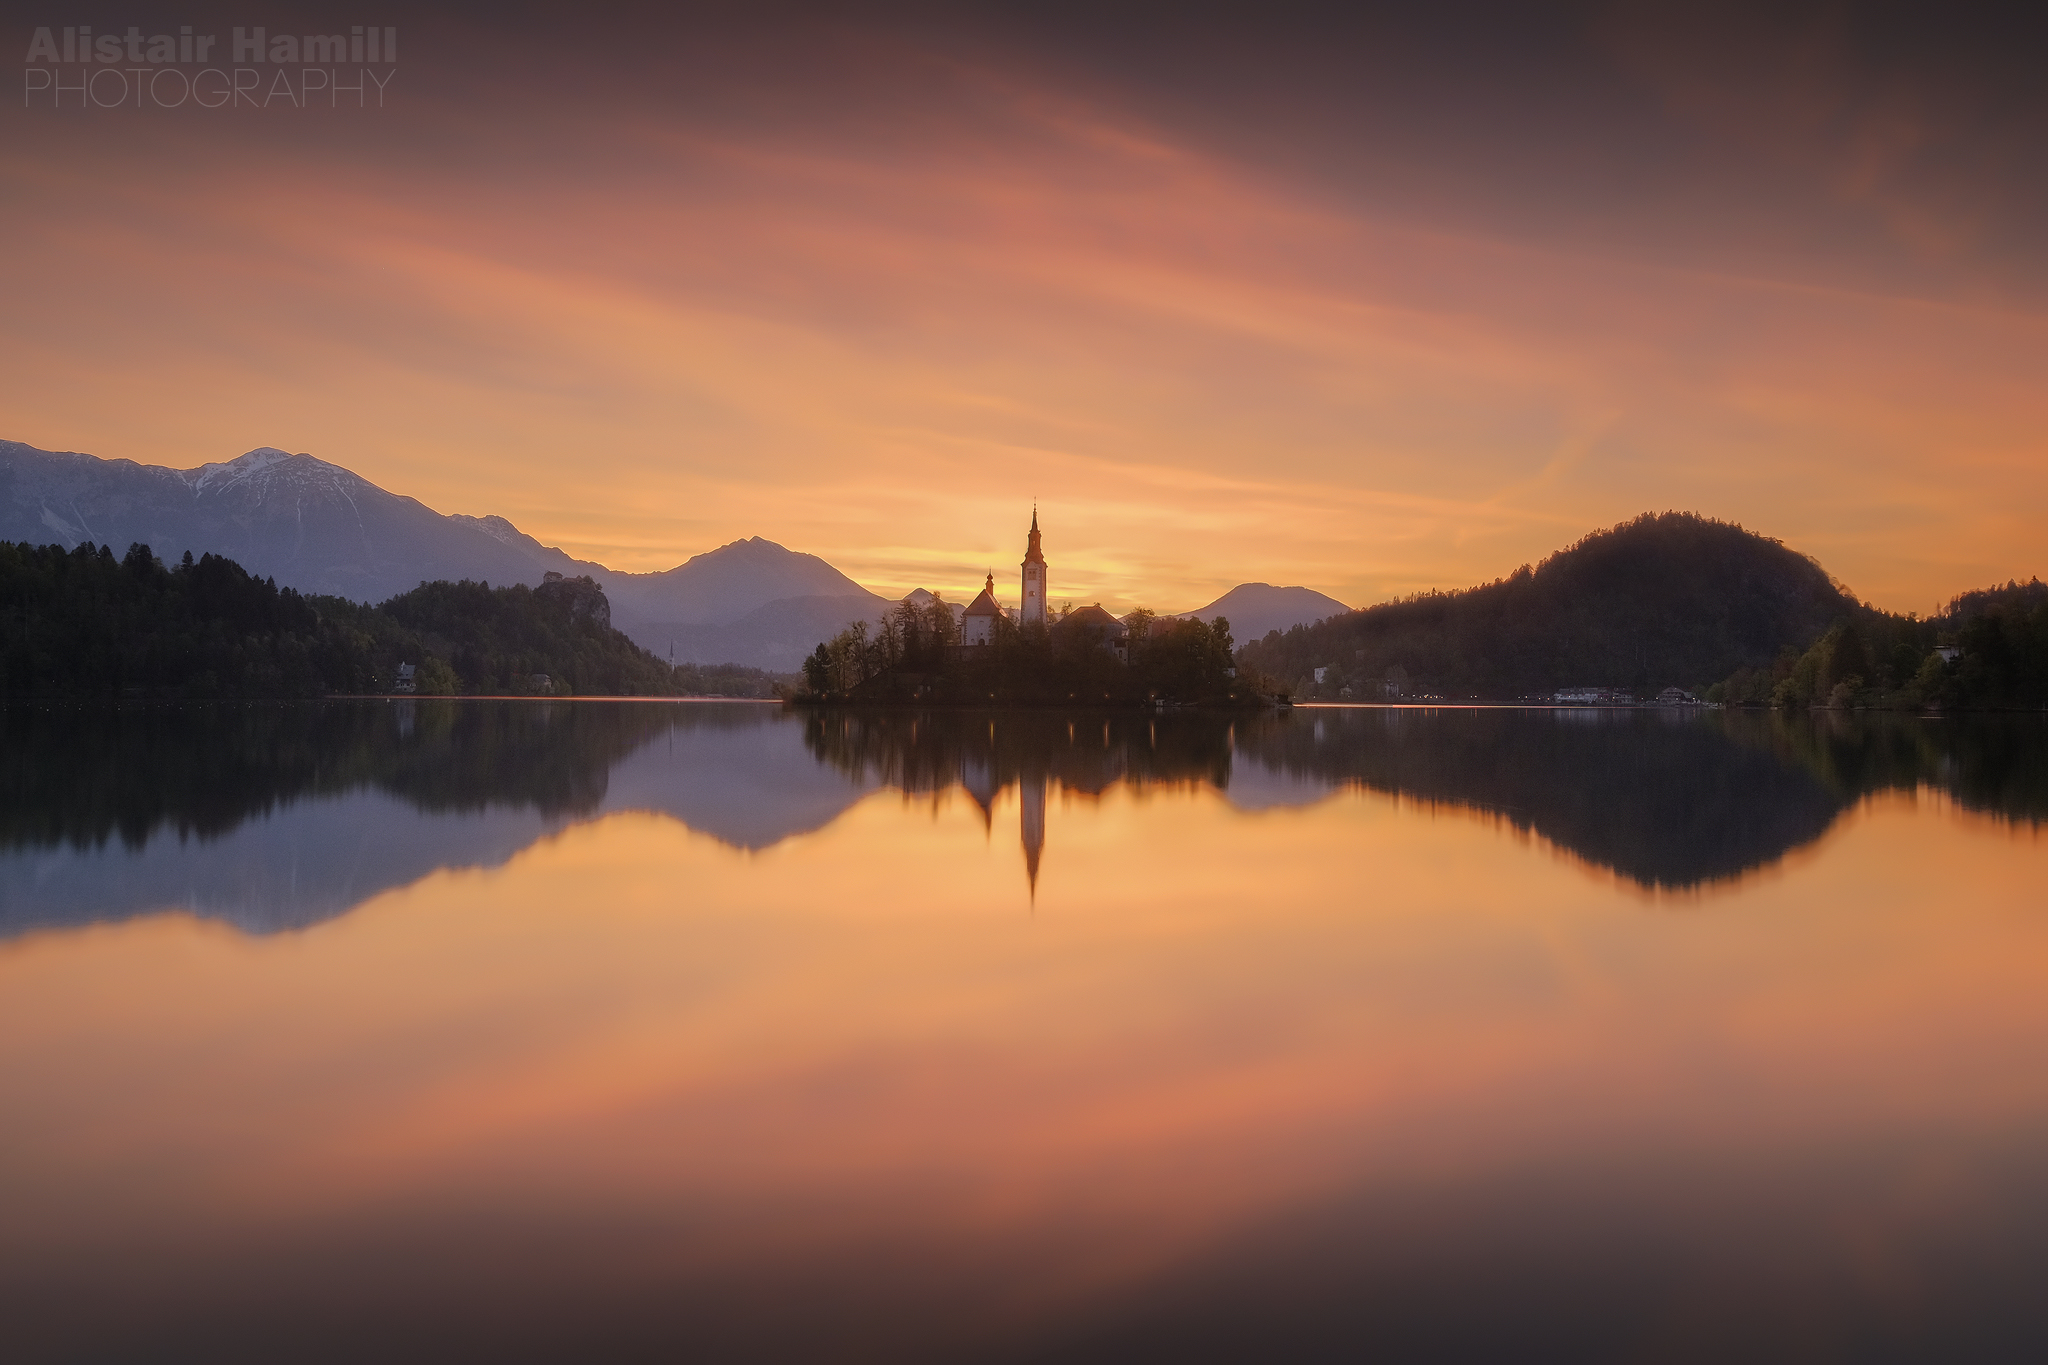 Lake+Bled+sunrise+1+glamor+glow+with+lights+(large)+WM.jpg